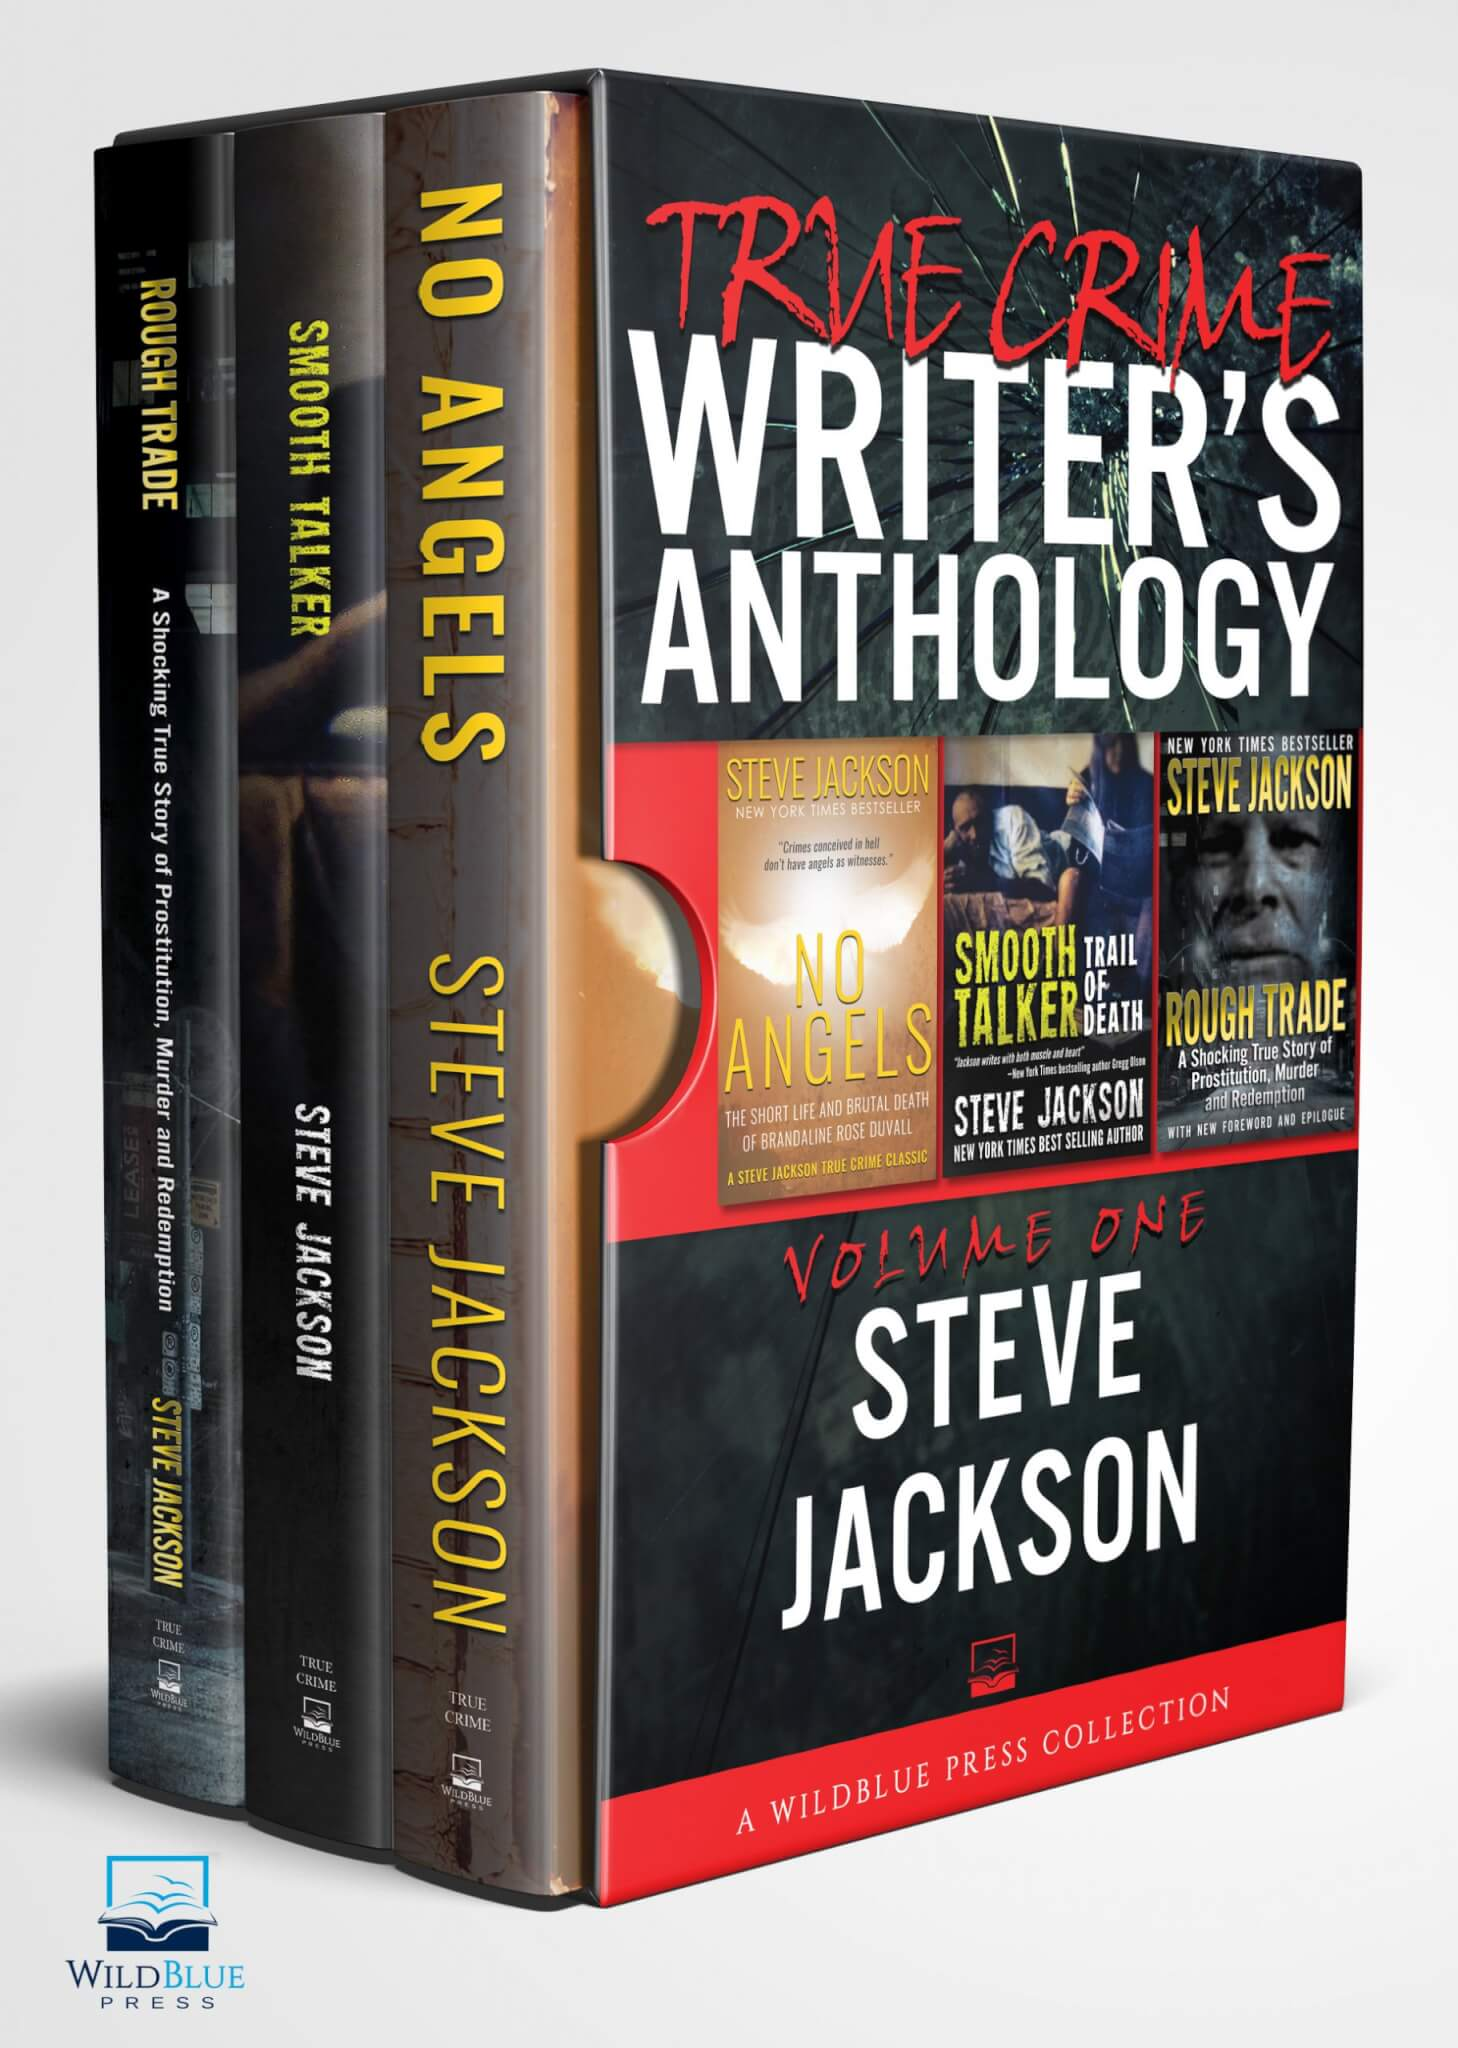 TRUE CRIME WRITER'S ANTHOLOGY Volume One Steve Jackson Kindle Cover